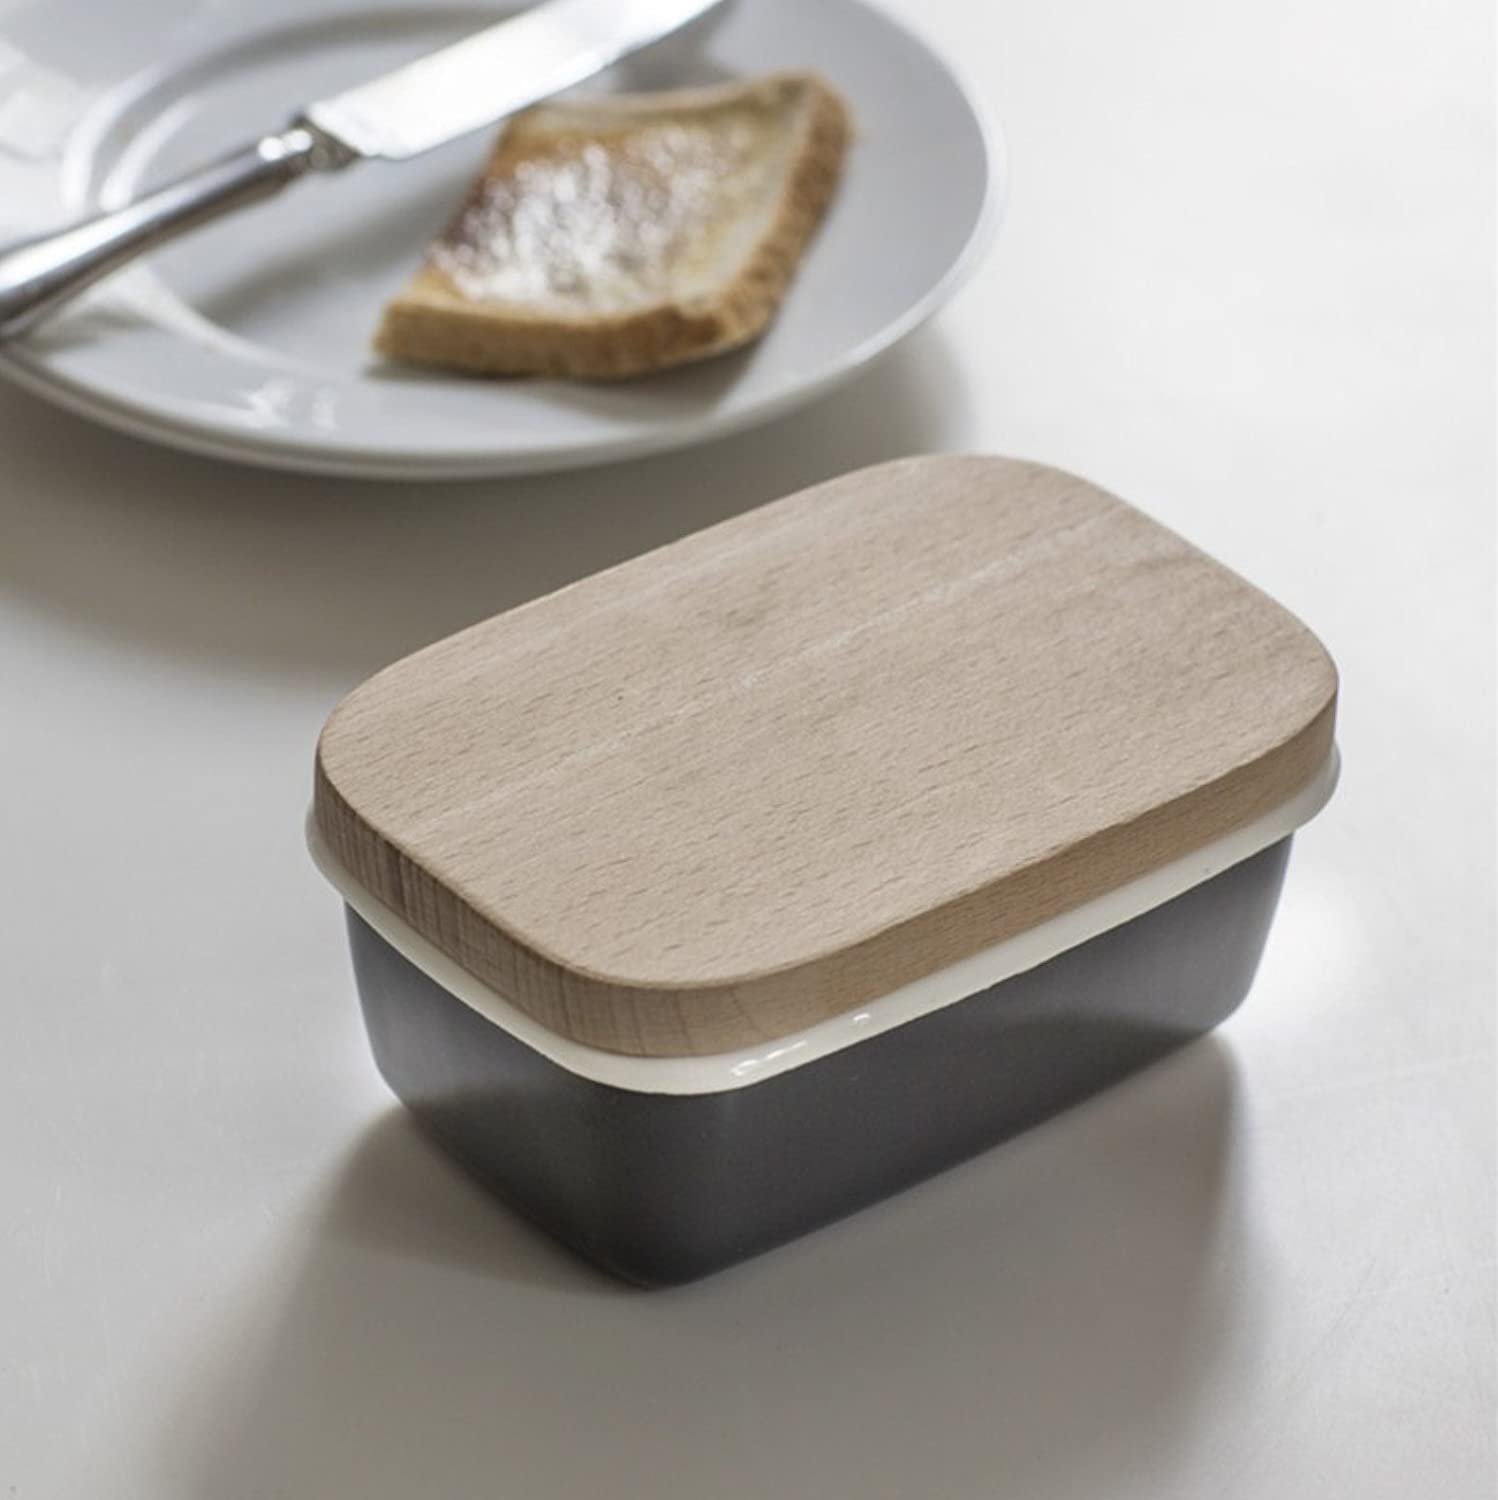 CKB LTD Traditional Butter Dish with Wooden Lid in Charcoal Holder Storage Premium Design With Beech Wood Lid and Crafted From Vitreous Enamel - Charcoal Grey